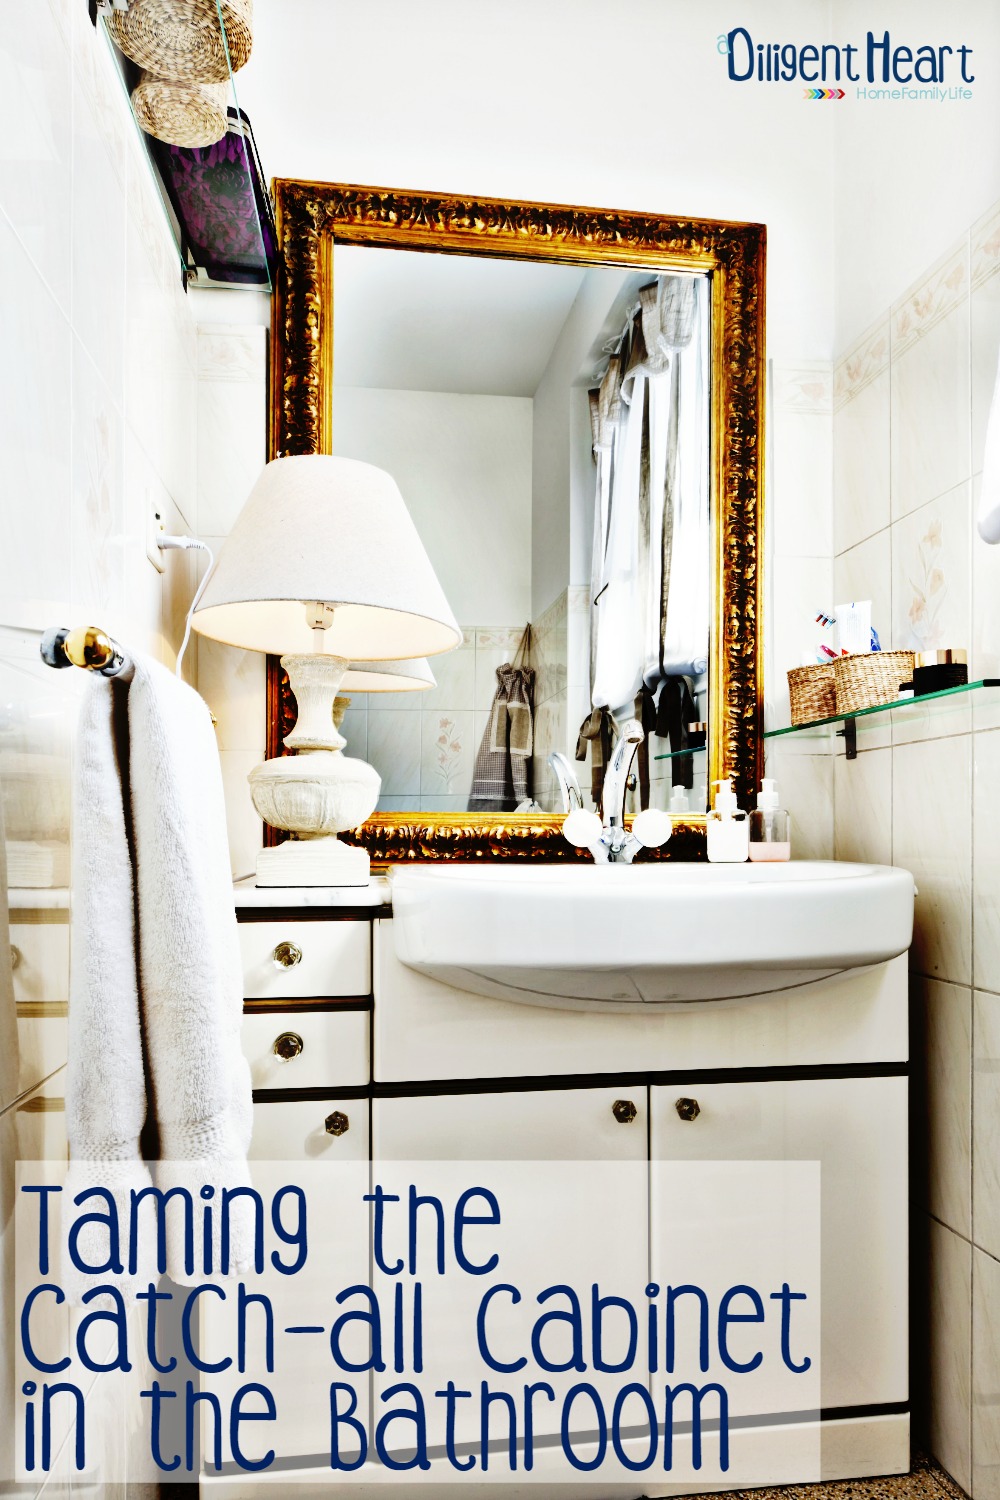 Like mine, does your bathroom have one of those catch-all cabinets? You know the one – it houses every random thing you keep in your bathroom. I'm sharing a few really simple tips to help you tame the chaos in that cabinet!